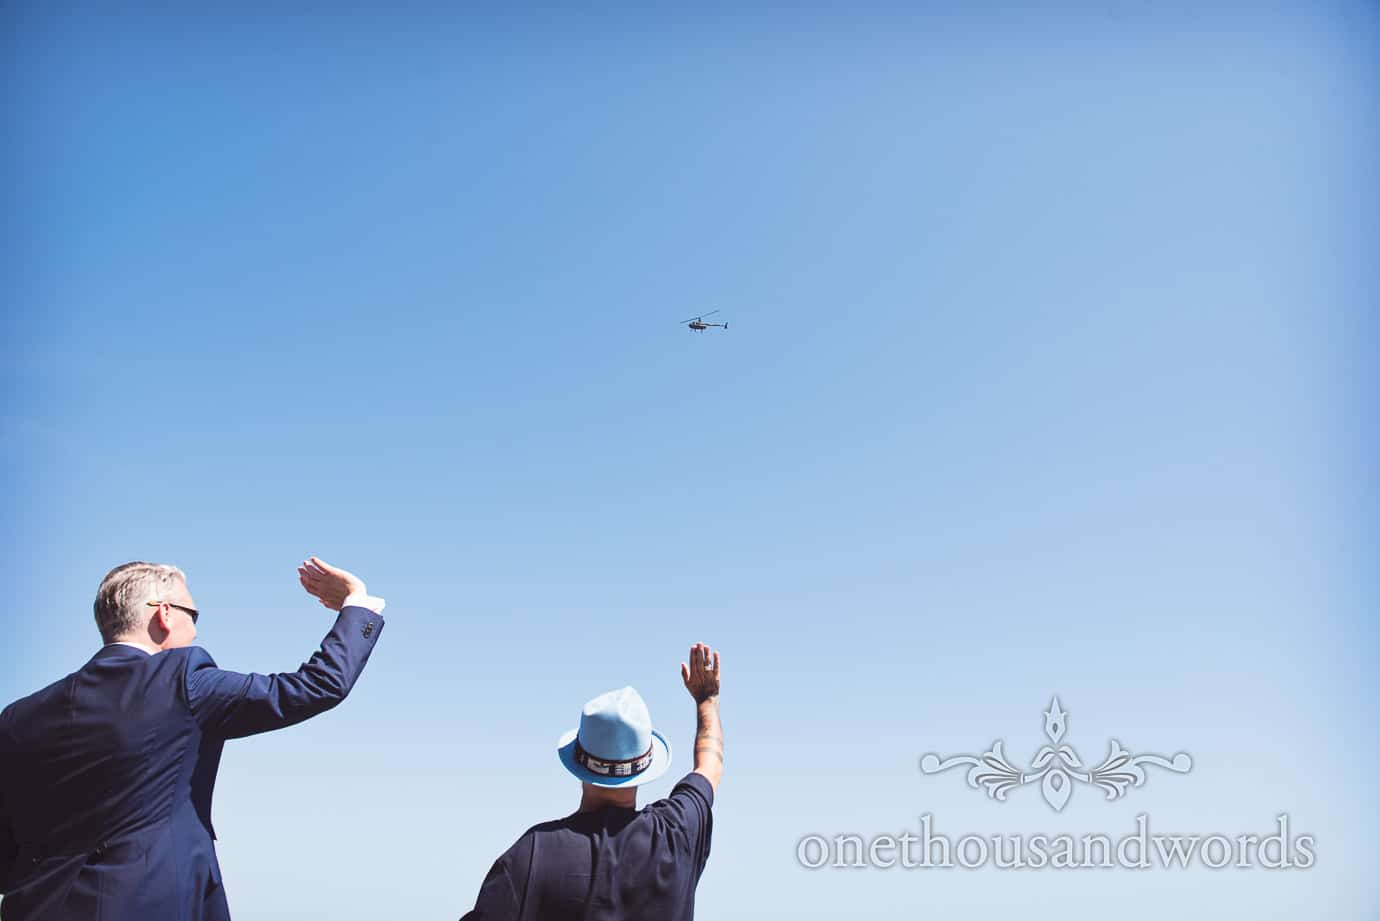 Swanage Wedding Photographers capture wedding guests waving at wedding helicopter